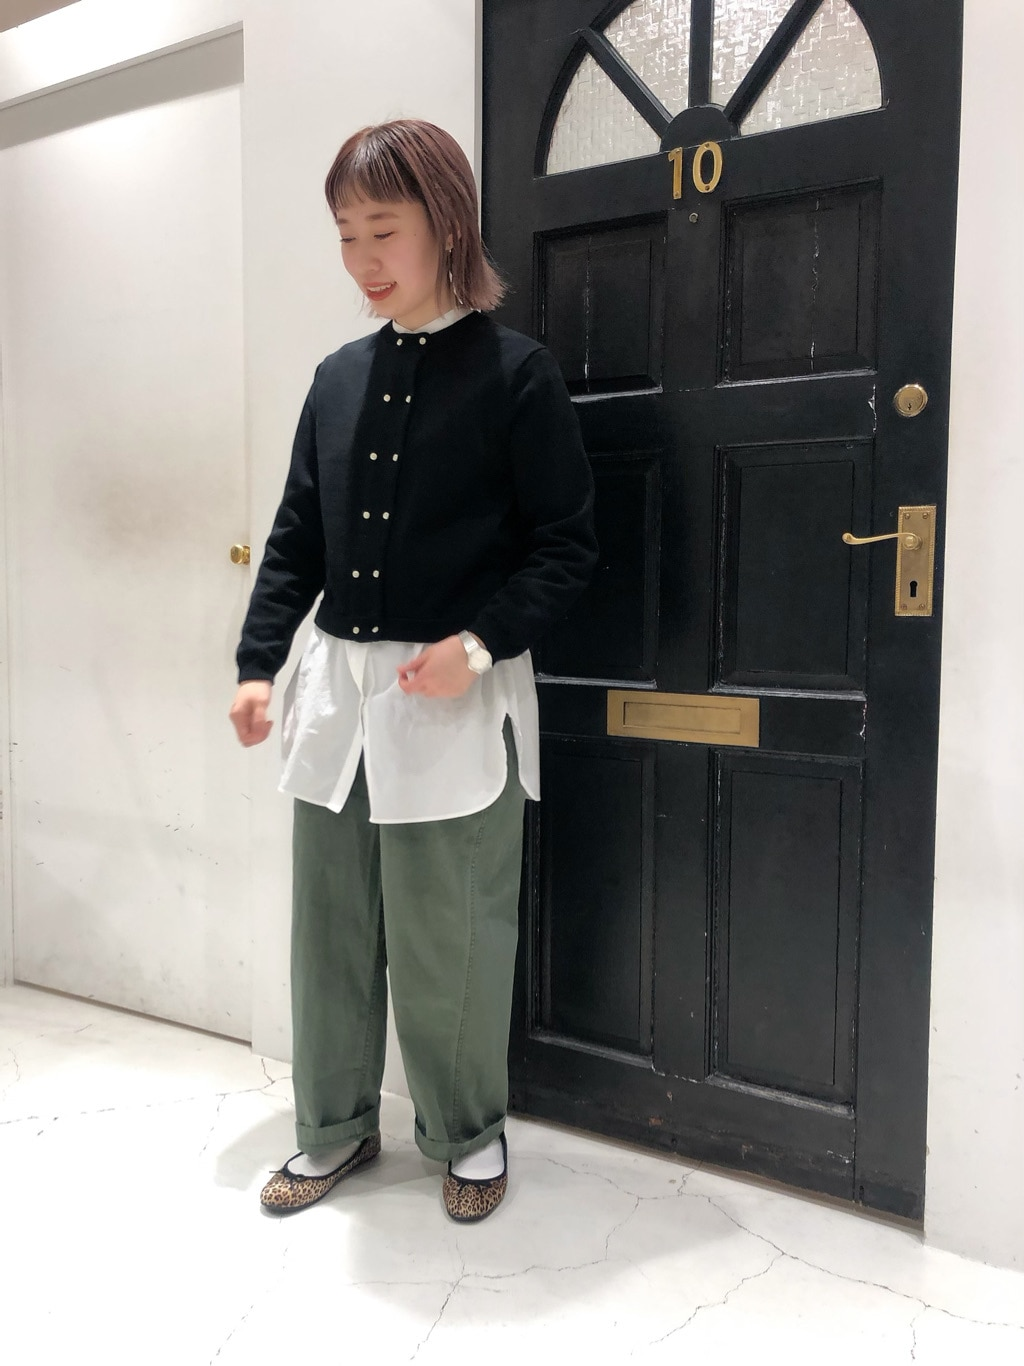 Dot and Stripes CHILD WOMAN ルクアイーレ 身長:157cm 2021.01.26